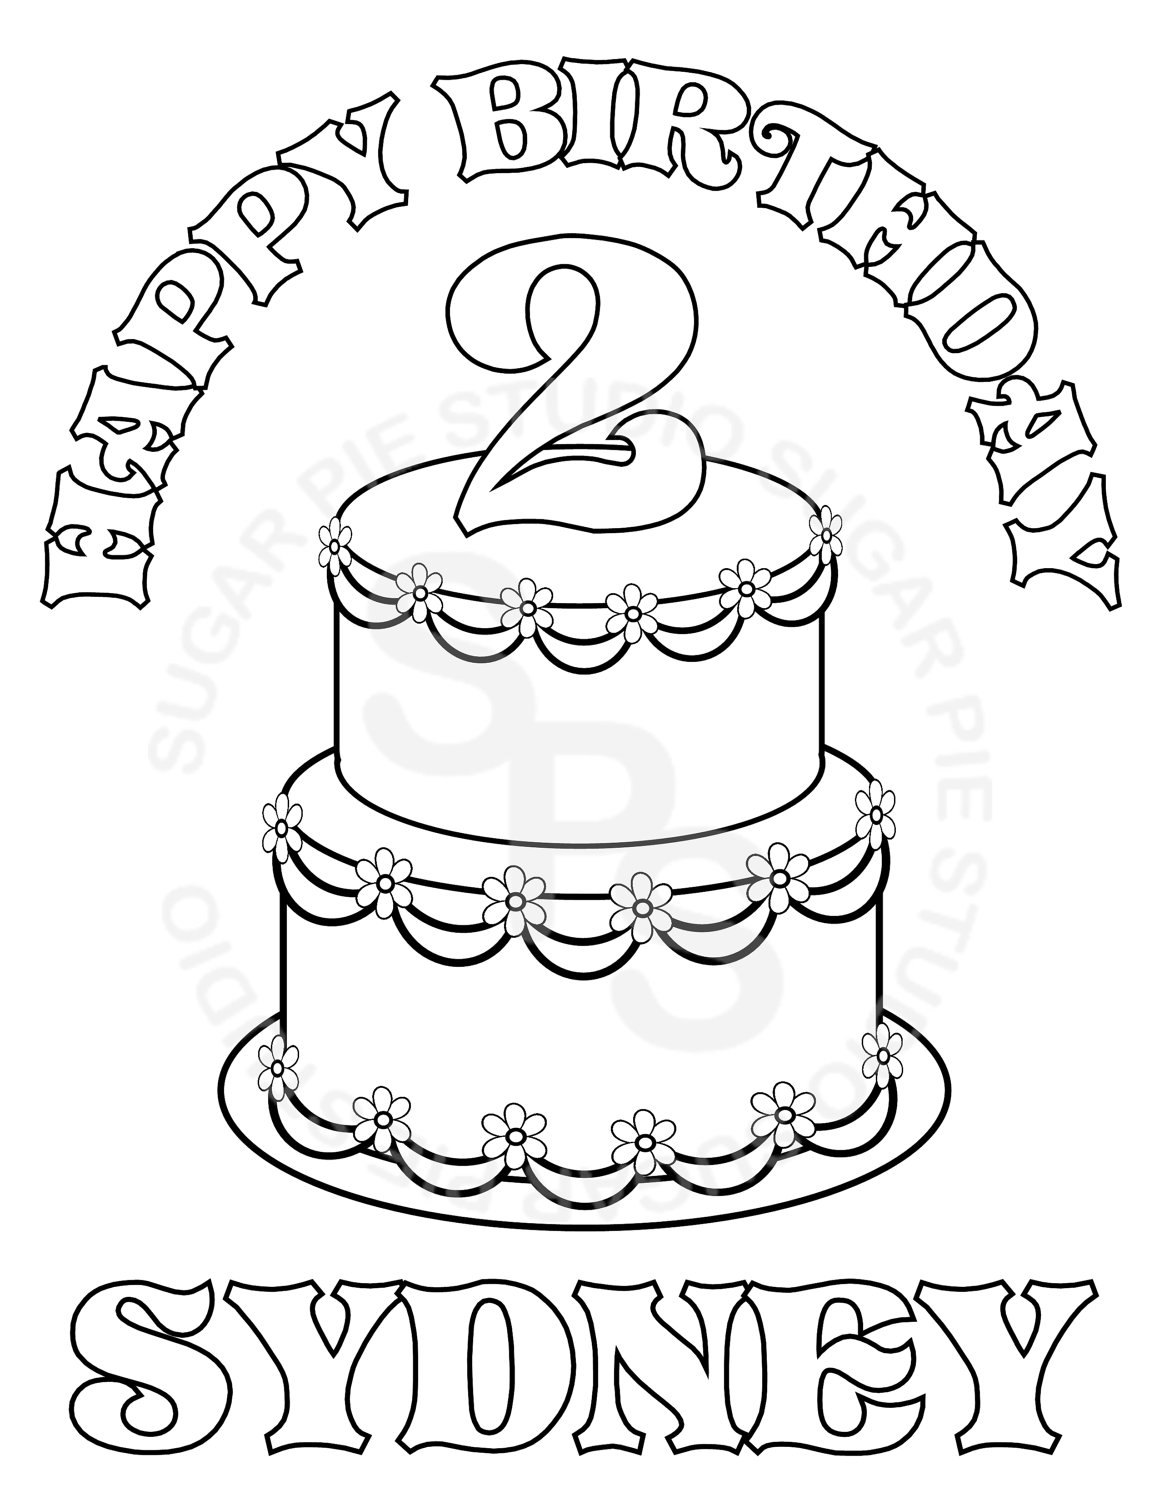 1159x1500 Personalized Coloring Pages With Wallpaper Desktop Throughout